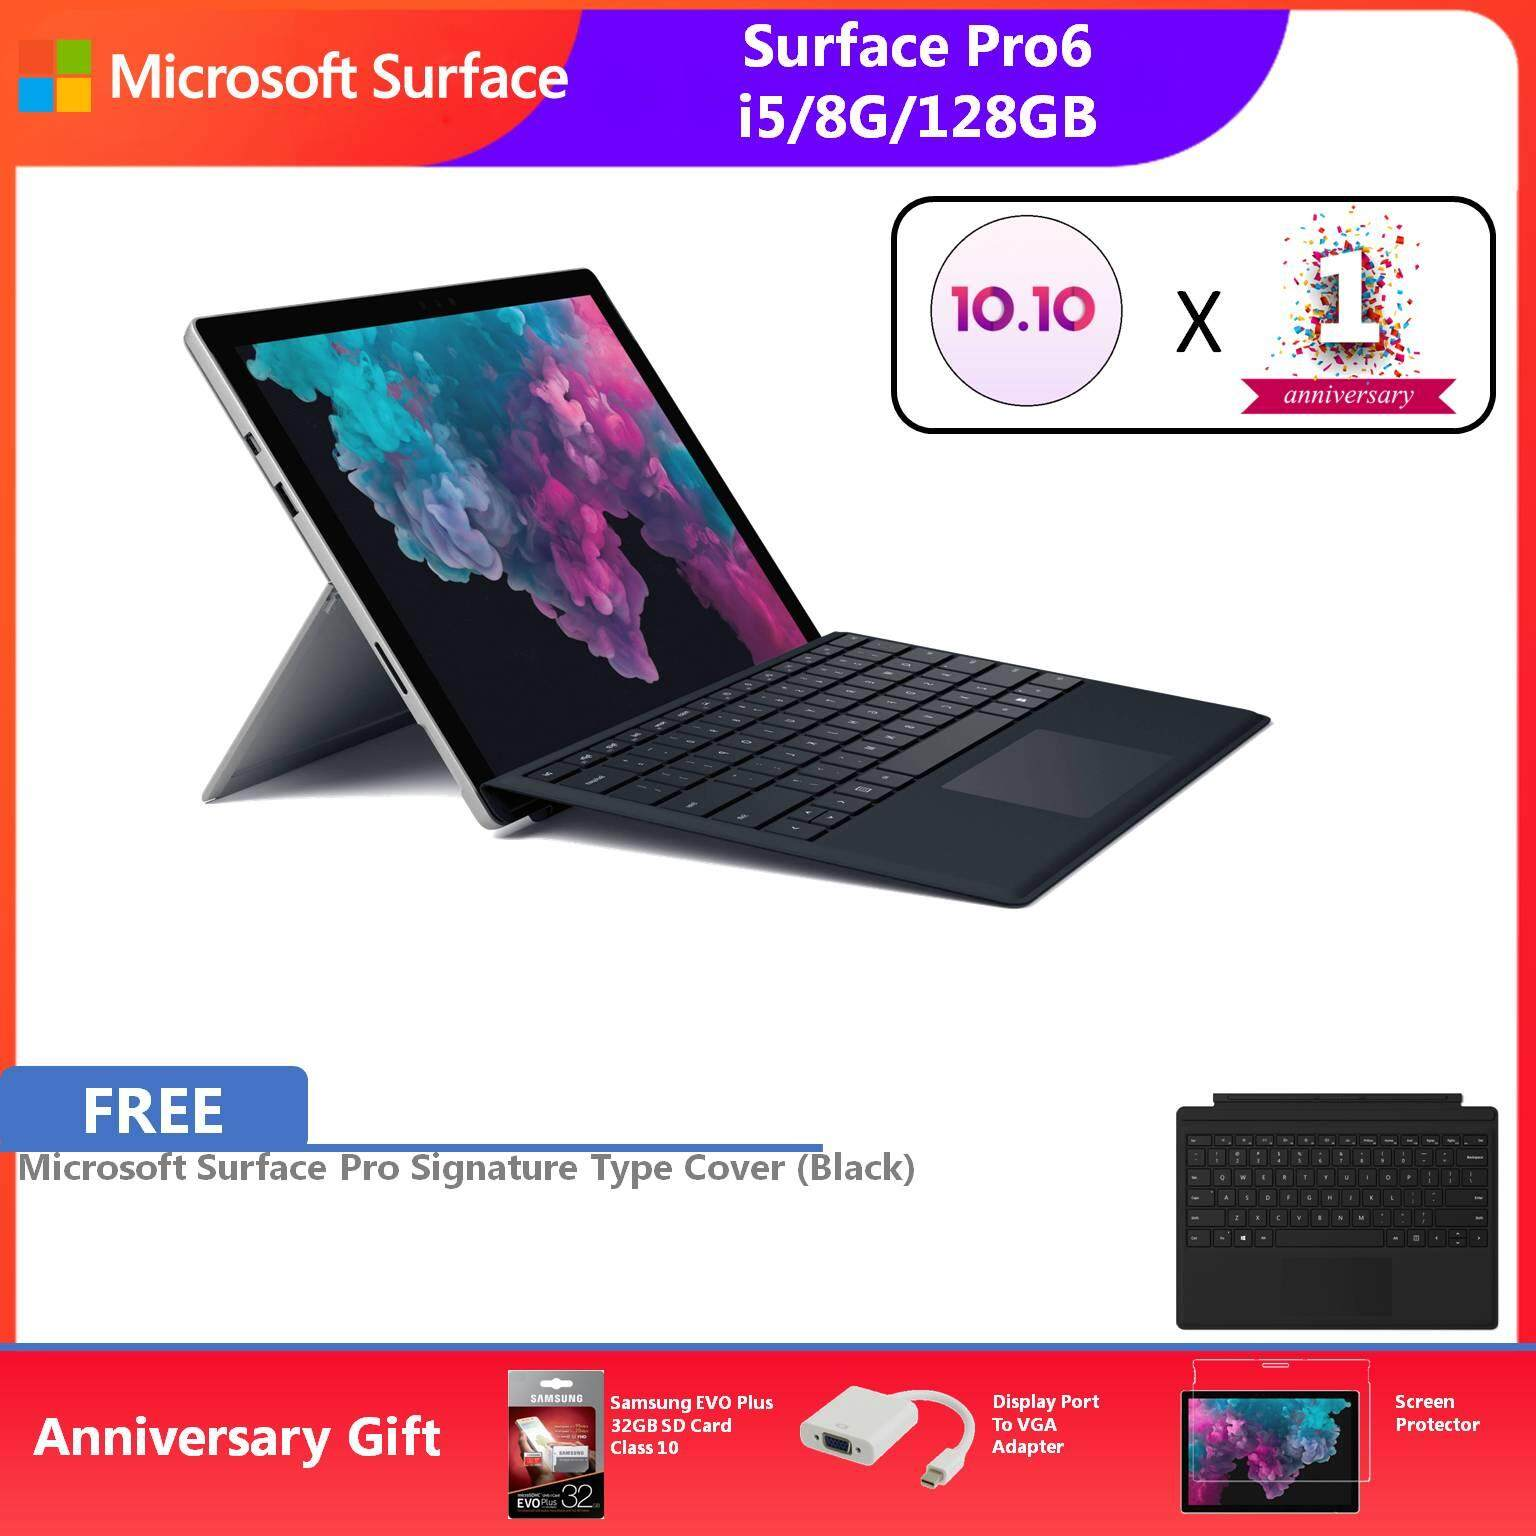 [10.10 & Anniversary Offer] Microsoft Surface Pro6 - 128GB / Intel Core i5 8th Gen - 8GB RAM + Signature Pro Type Cover (Anniversary Gift) Malaysia